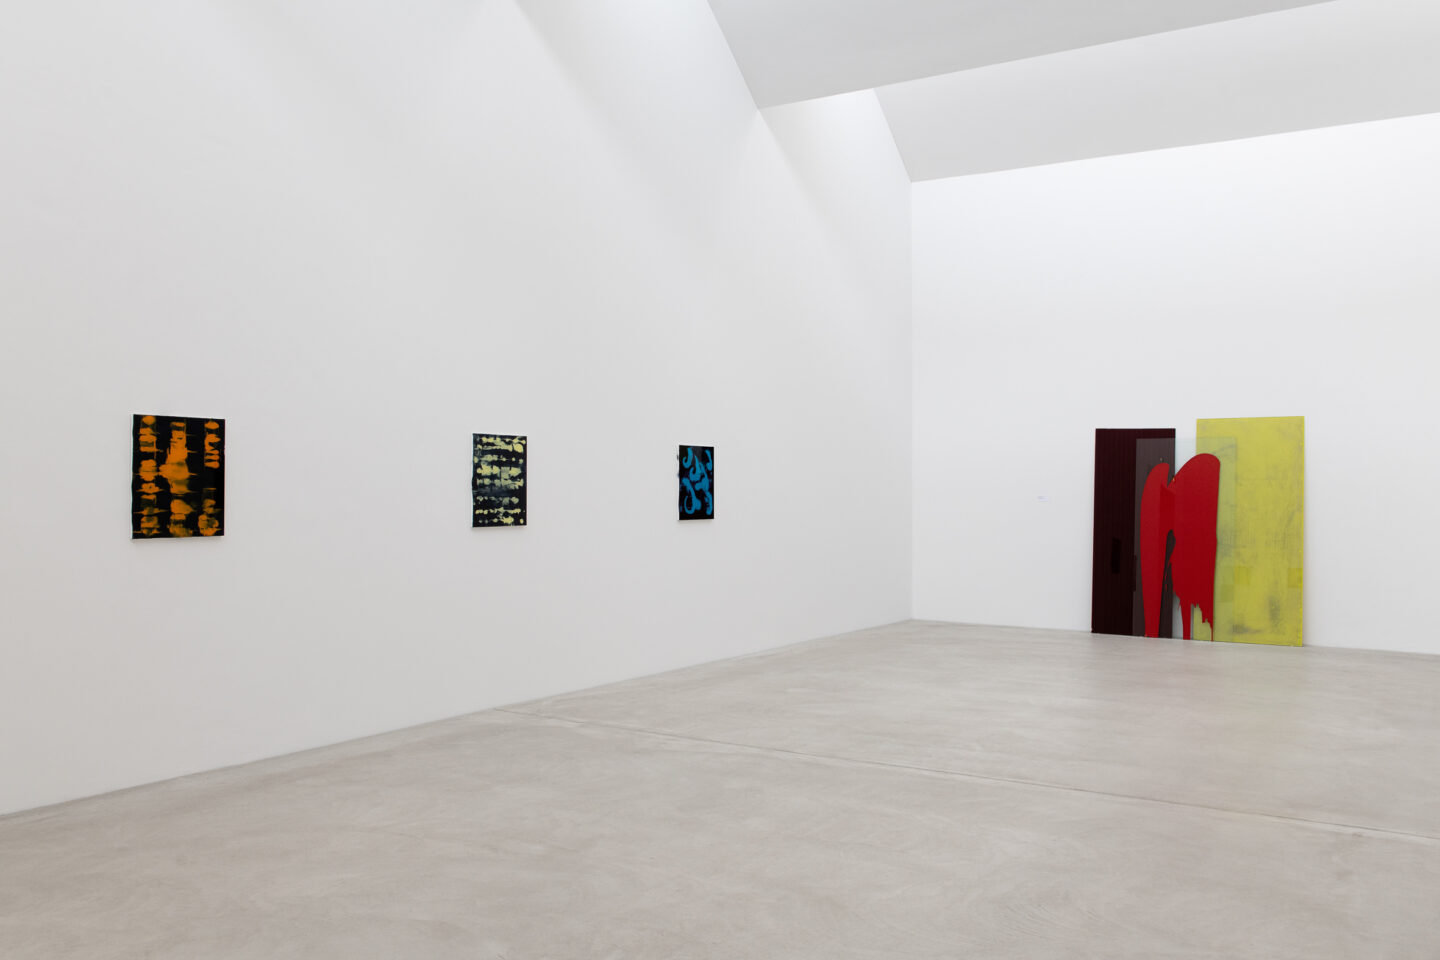 Exhibition View Groupshow «Frozen Gesture ; view on Christoph Rütimann, in blau VI, 2011, in blau III, 2011 and in blau II, 2011 (Courtesy the artist, Galerie Mai 36, Zurich and Galerie Skopia, Geneva) and Ohne Titel, 1994 (Courtesy the artist, Galerie Mai 36, Zurich)» at Kunstmuseum Winterthur, 2019 / Photo: Sebastian Stadler